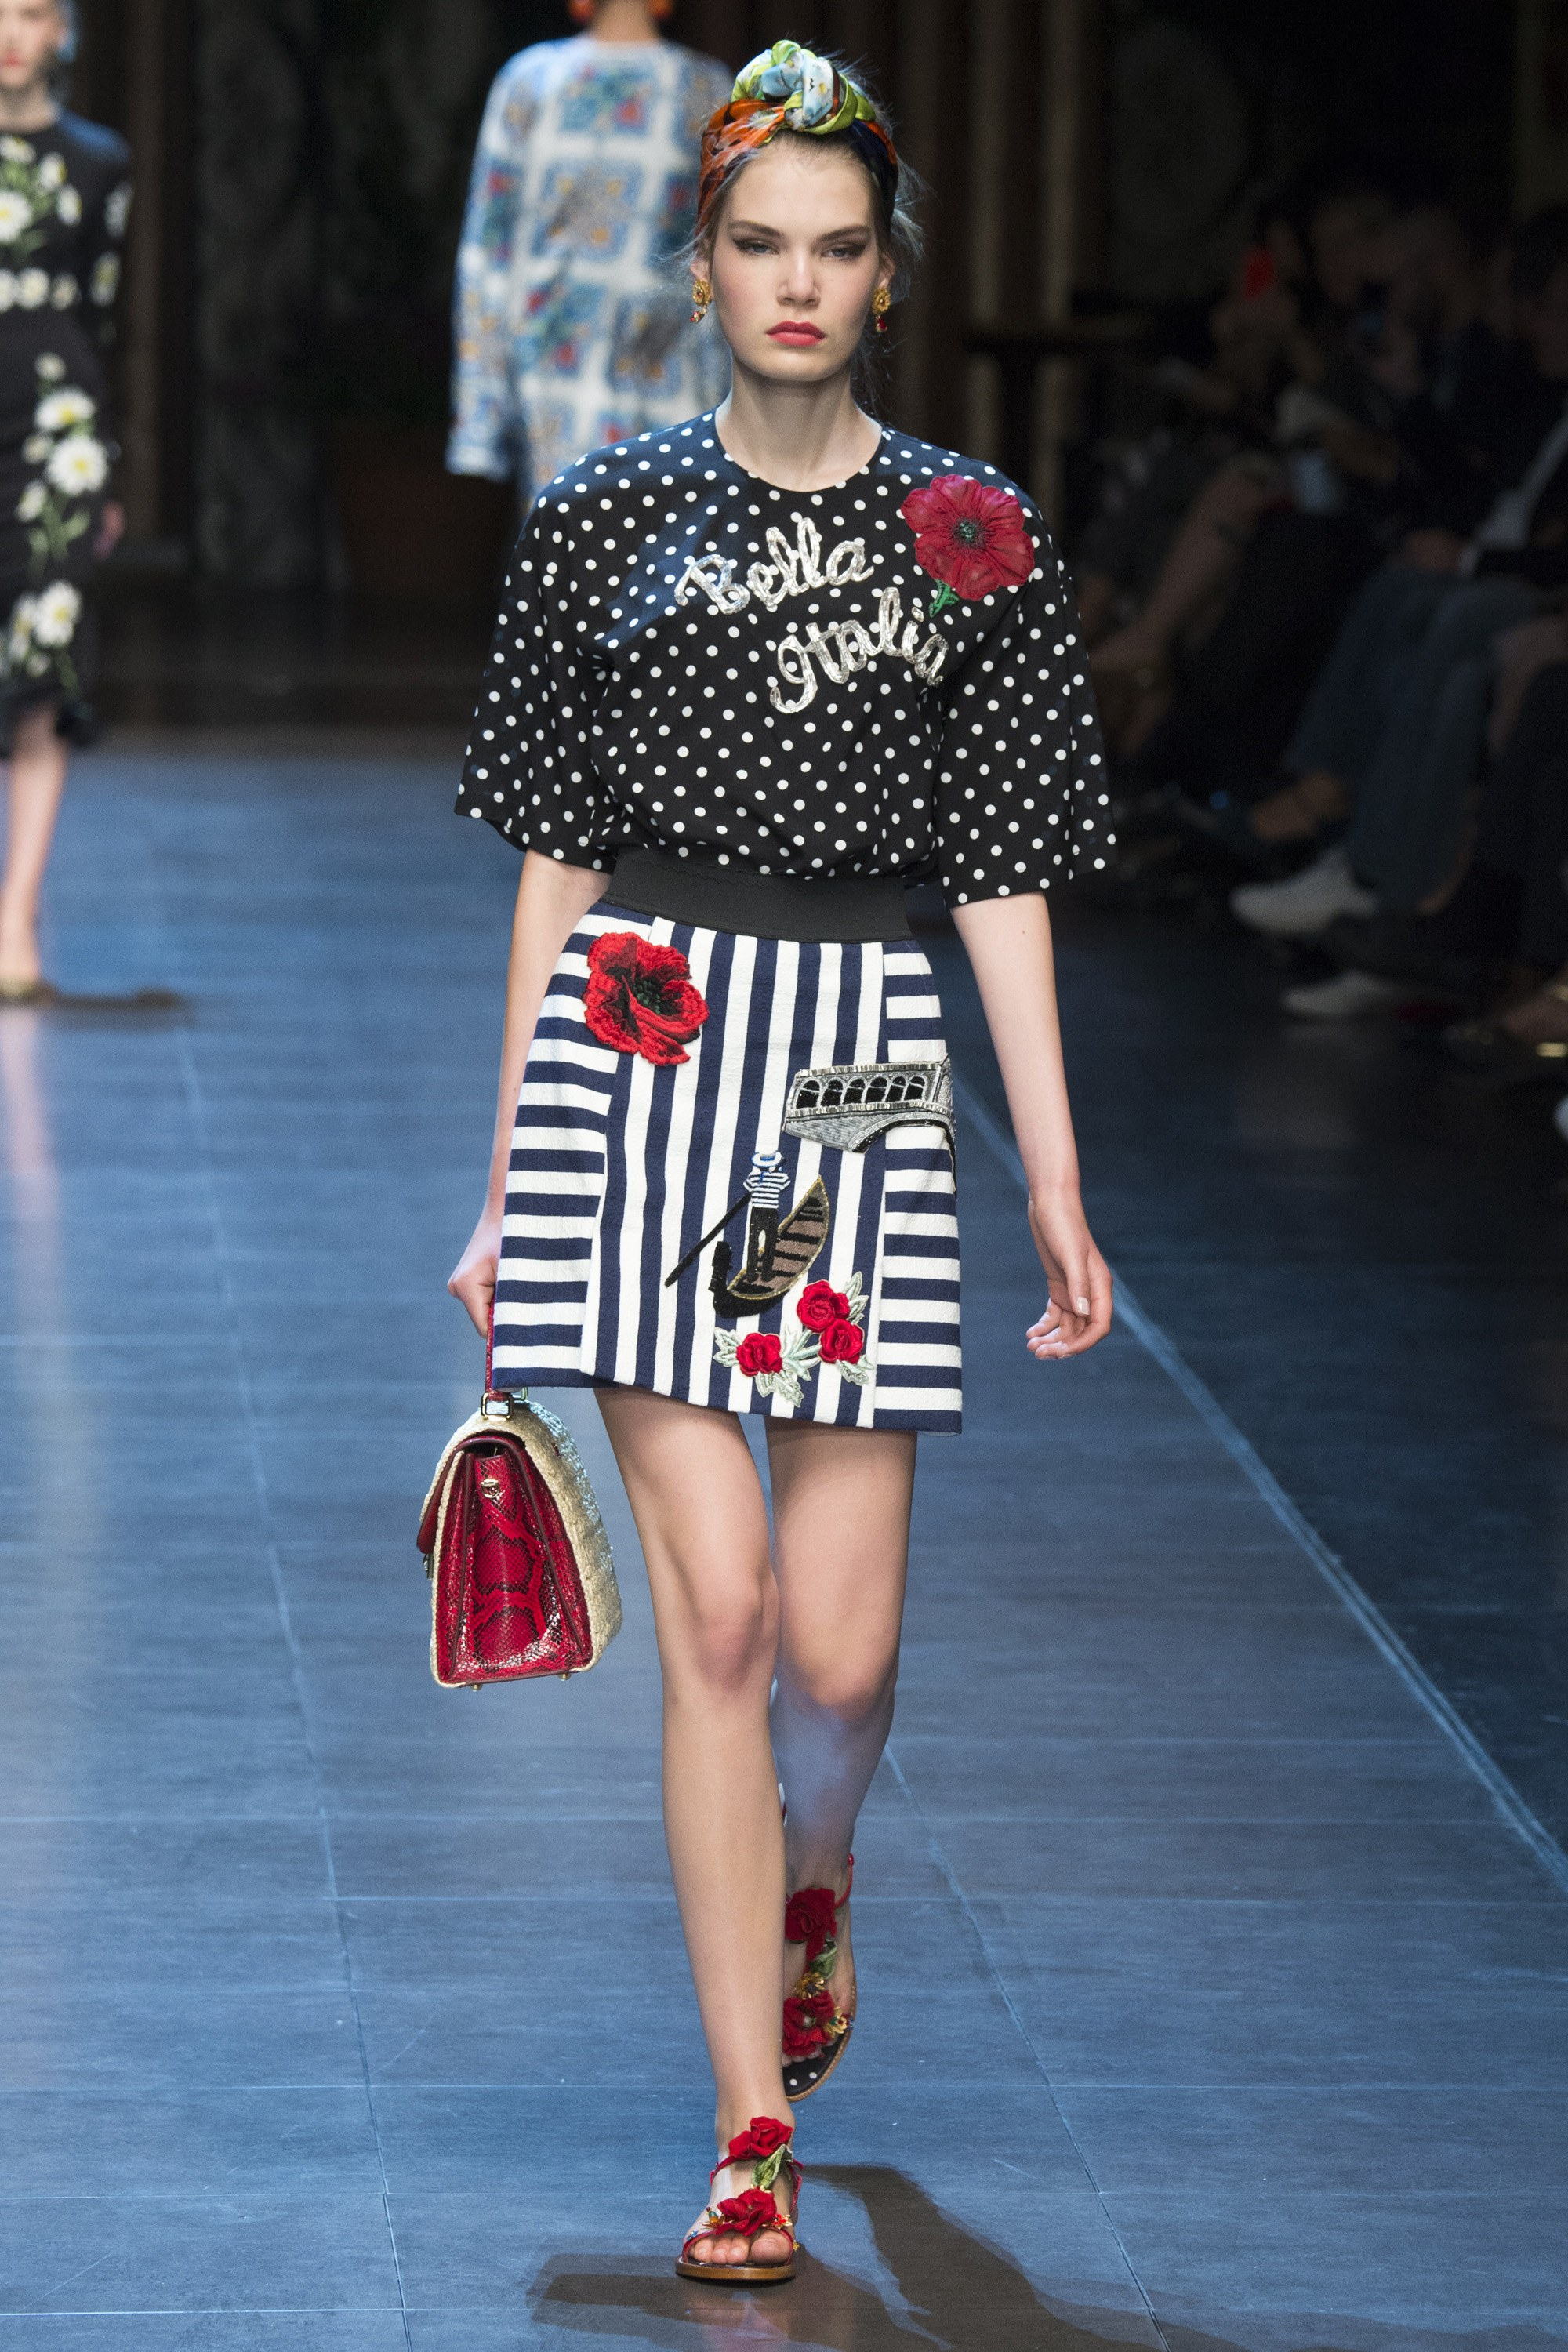 Milan-Fashion-Week-Dolce-Gabbana-33